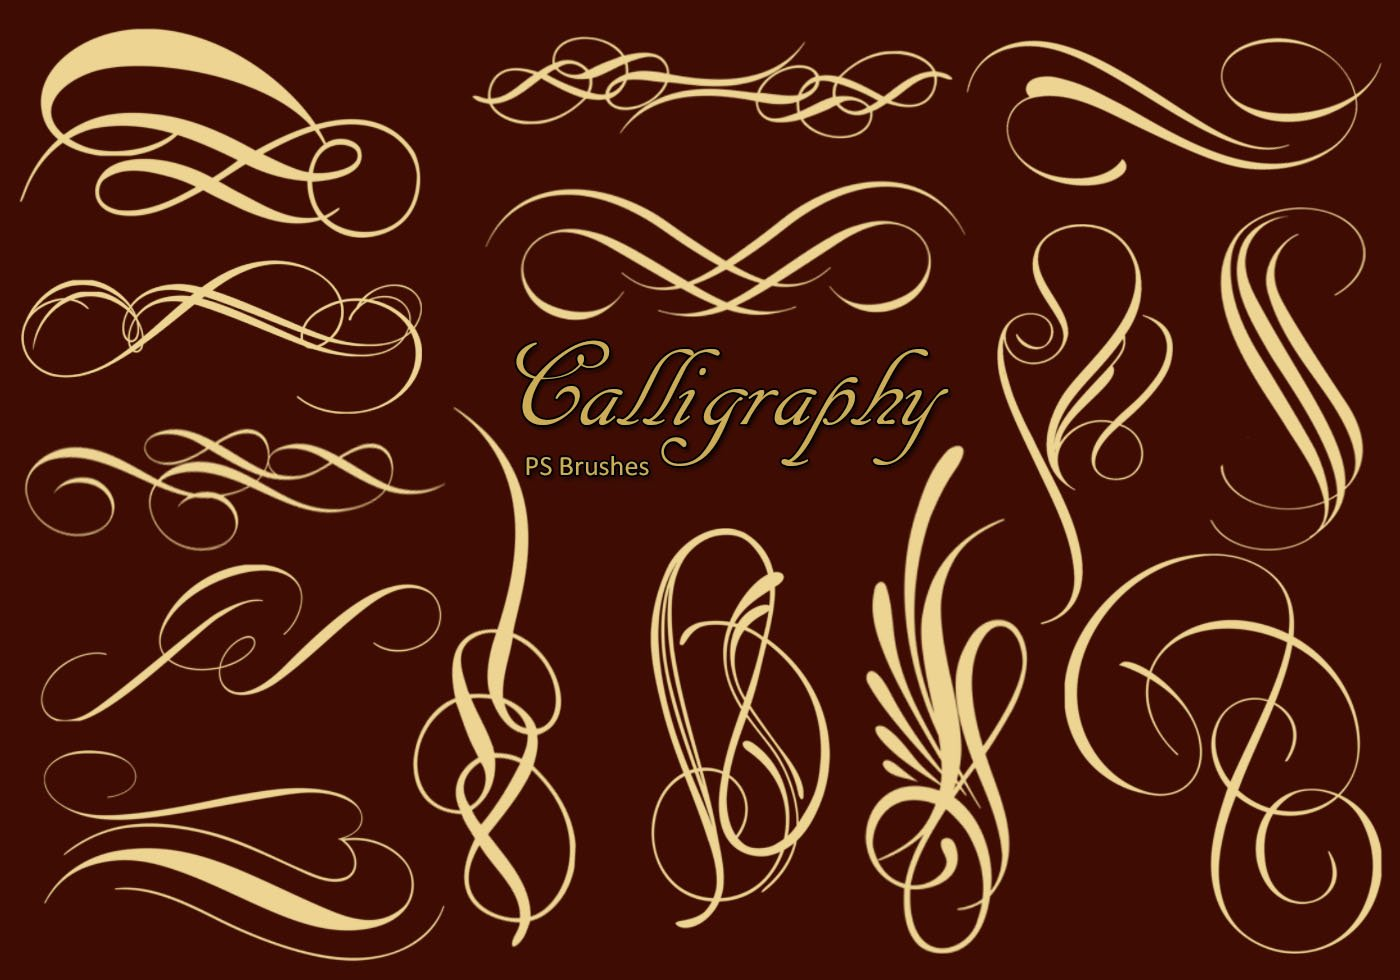 Calligraphy ps brushes abr vol free photoshop